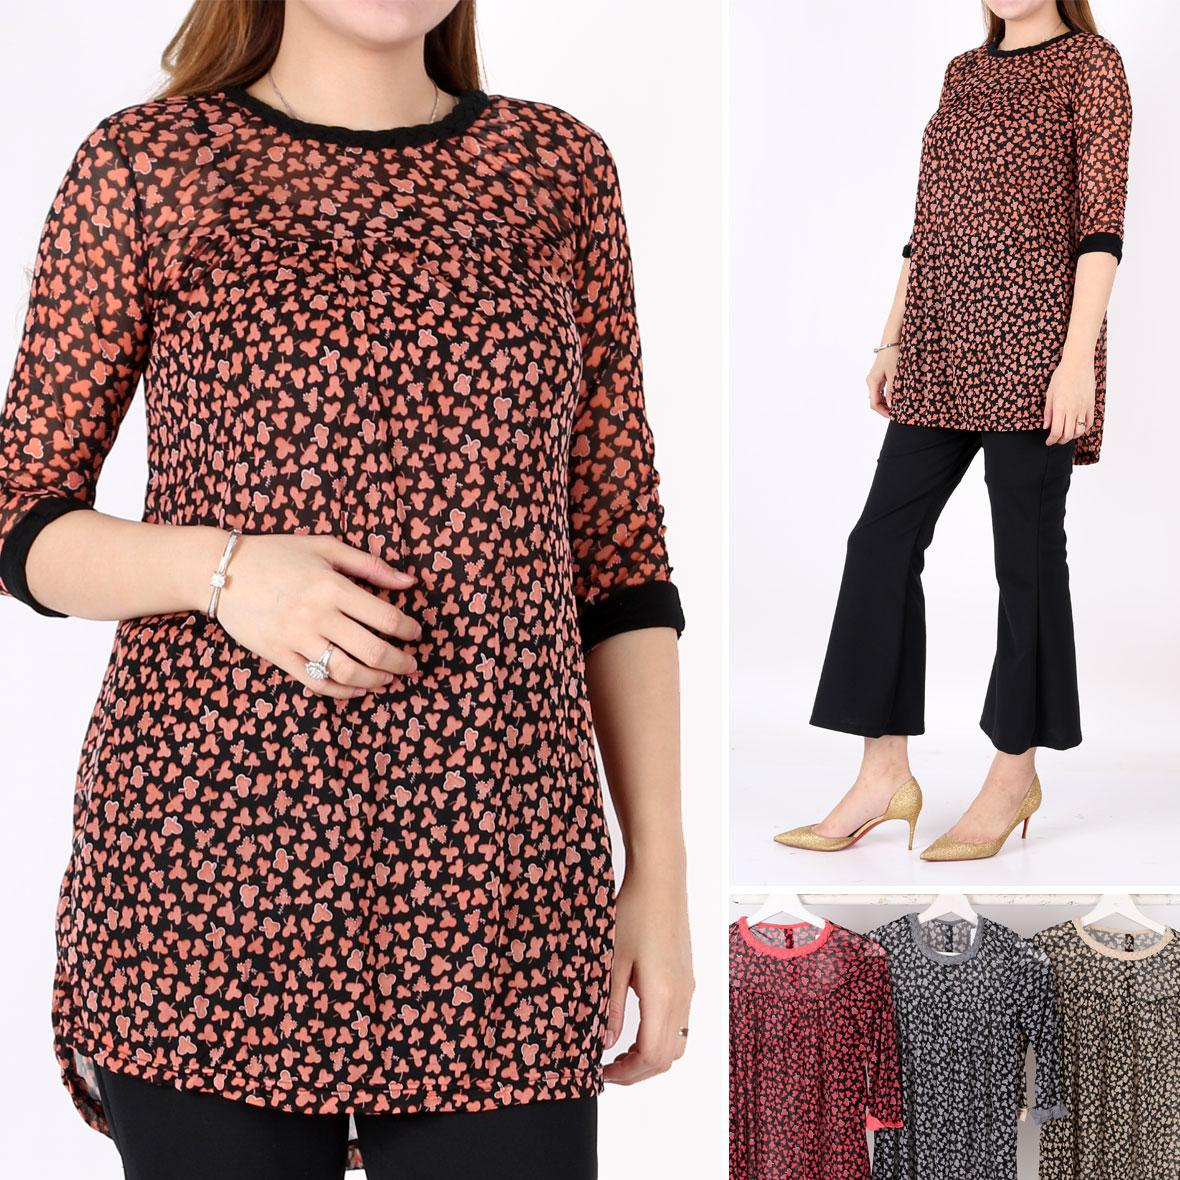 Oma Holley Fashion Roxane Casual T-Shirt Long Sleeve Size MIDR28000. Rp 28.000